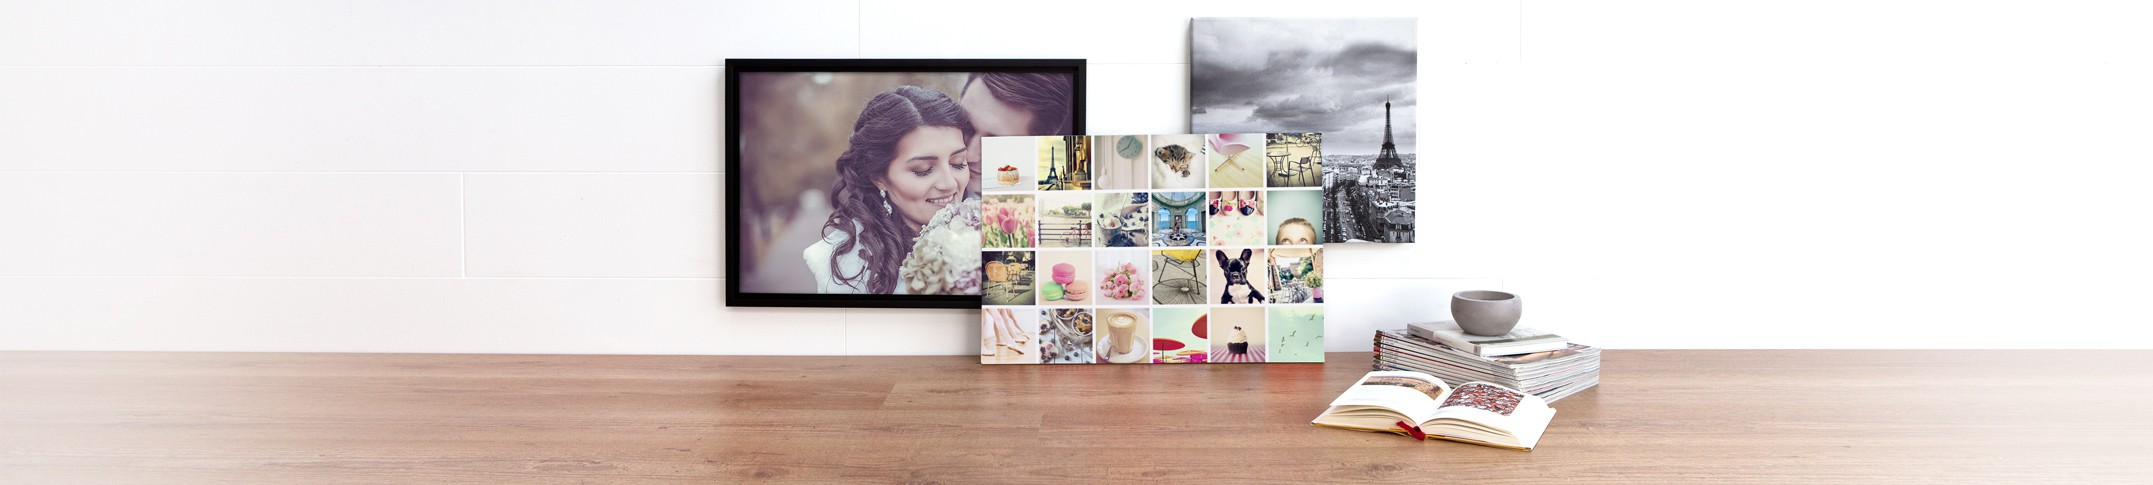 Wall Decoration on Canvas - Create your gallery of strikingly beautiful canvas wall art!